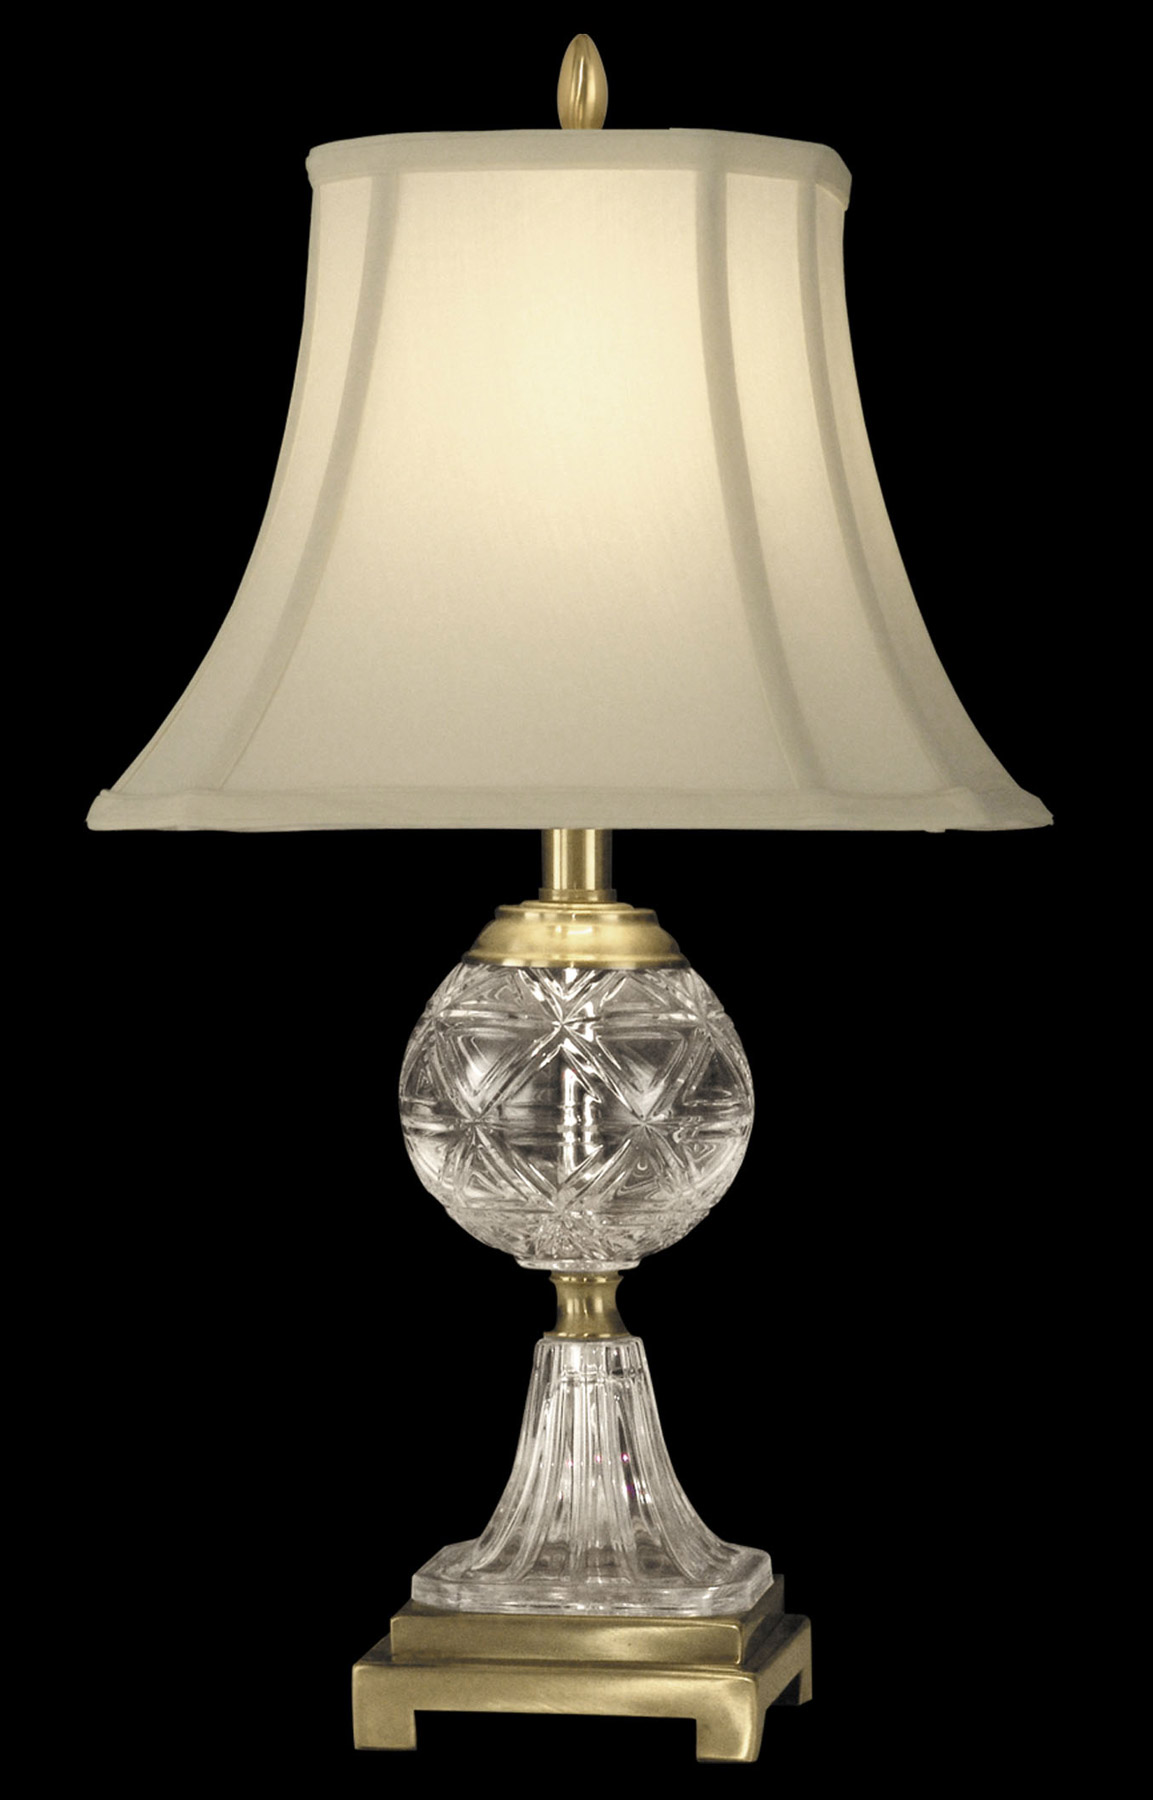 Dale Tiffany GT10370 Crystal Table Lamp